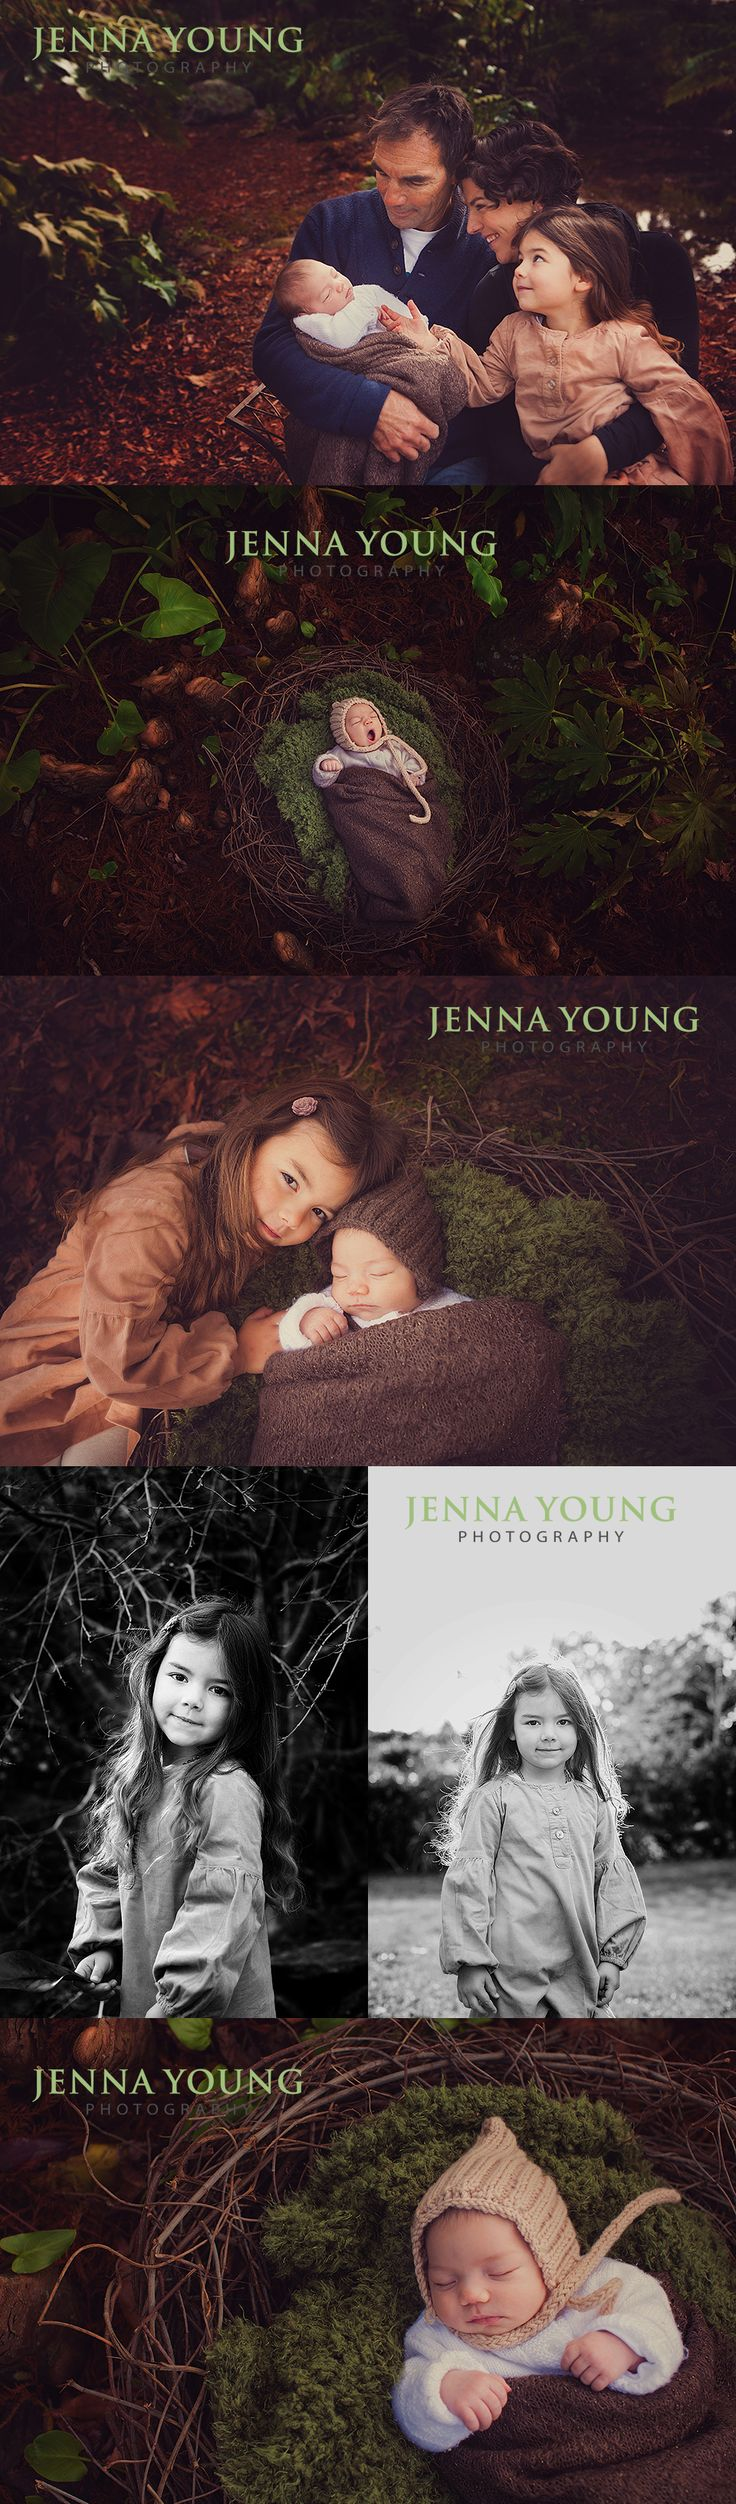 Photography by Jenna Young Photography